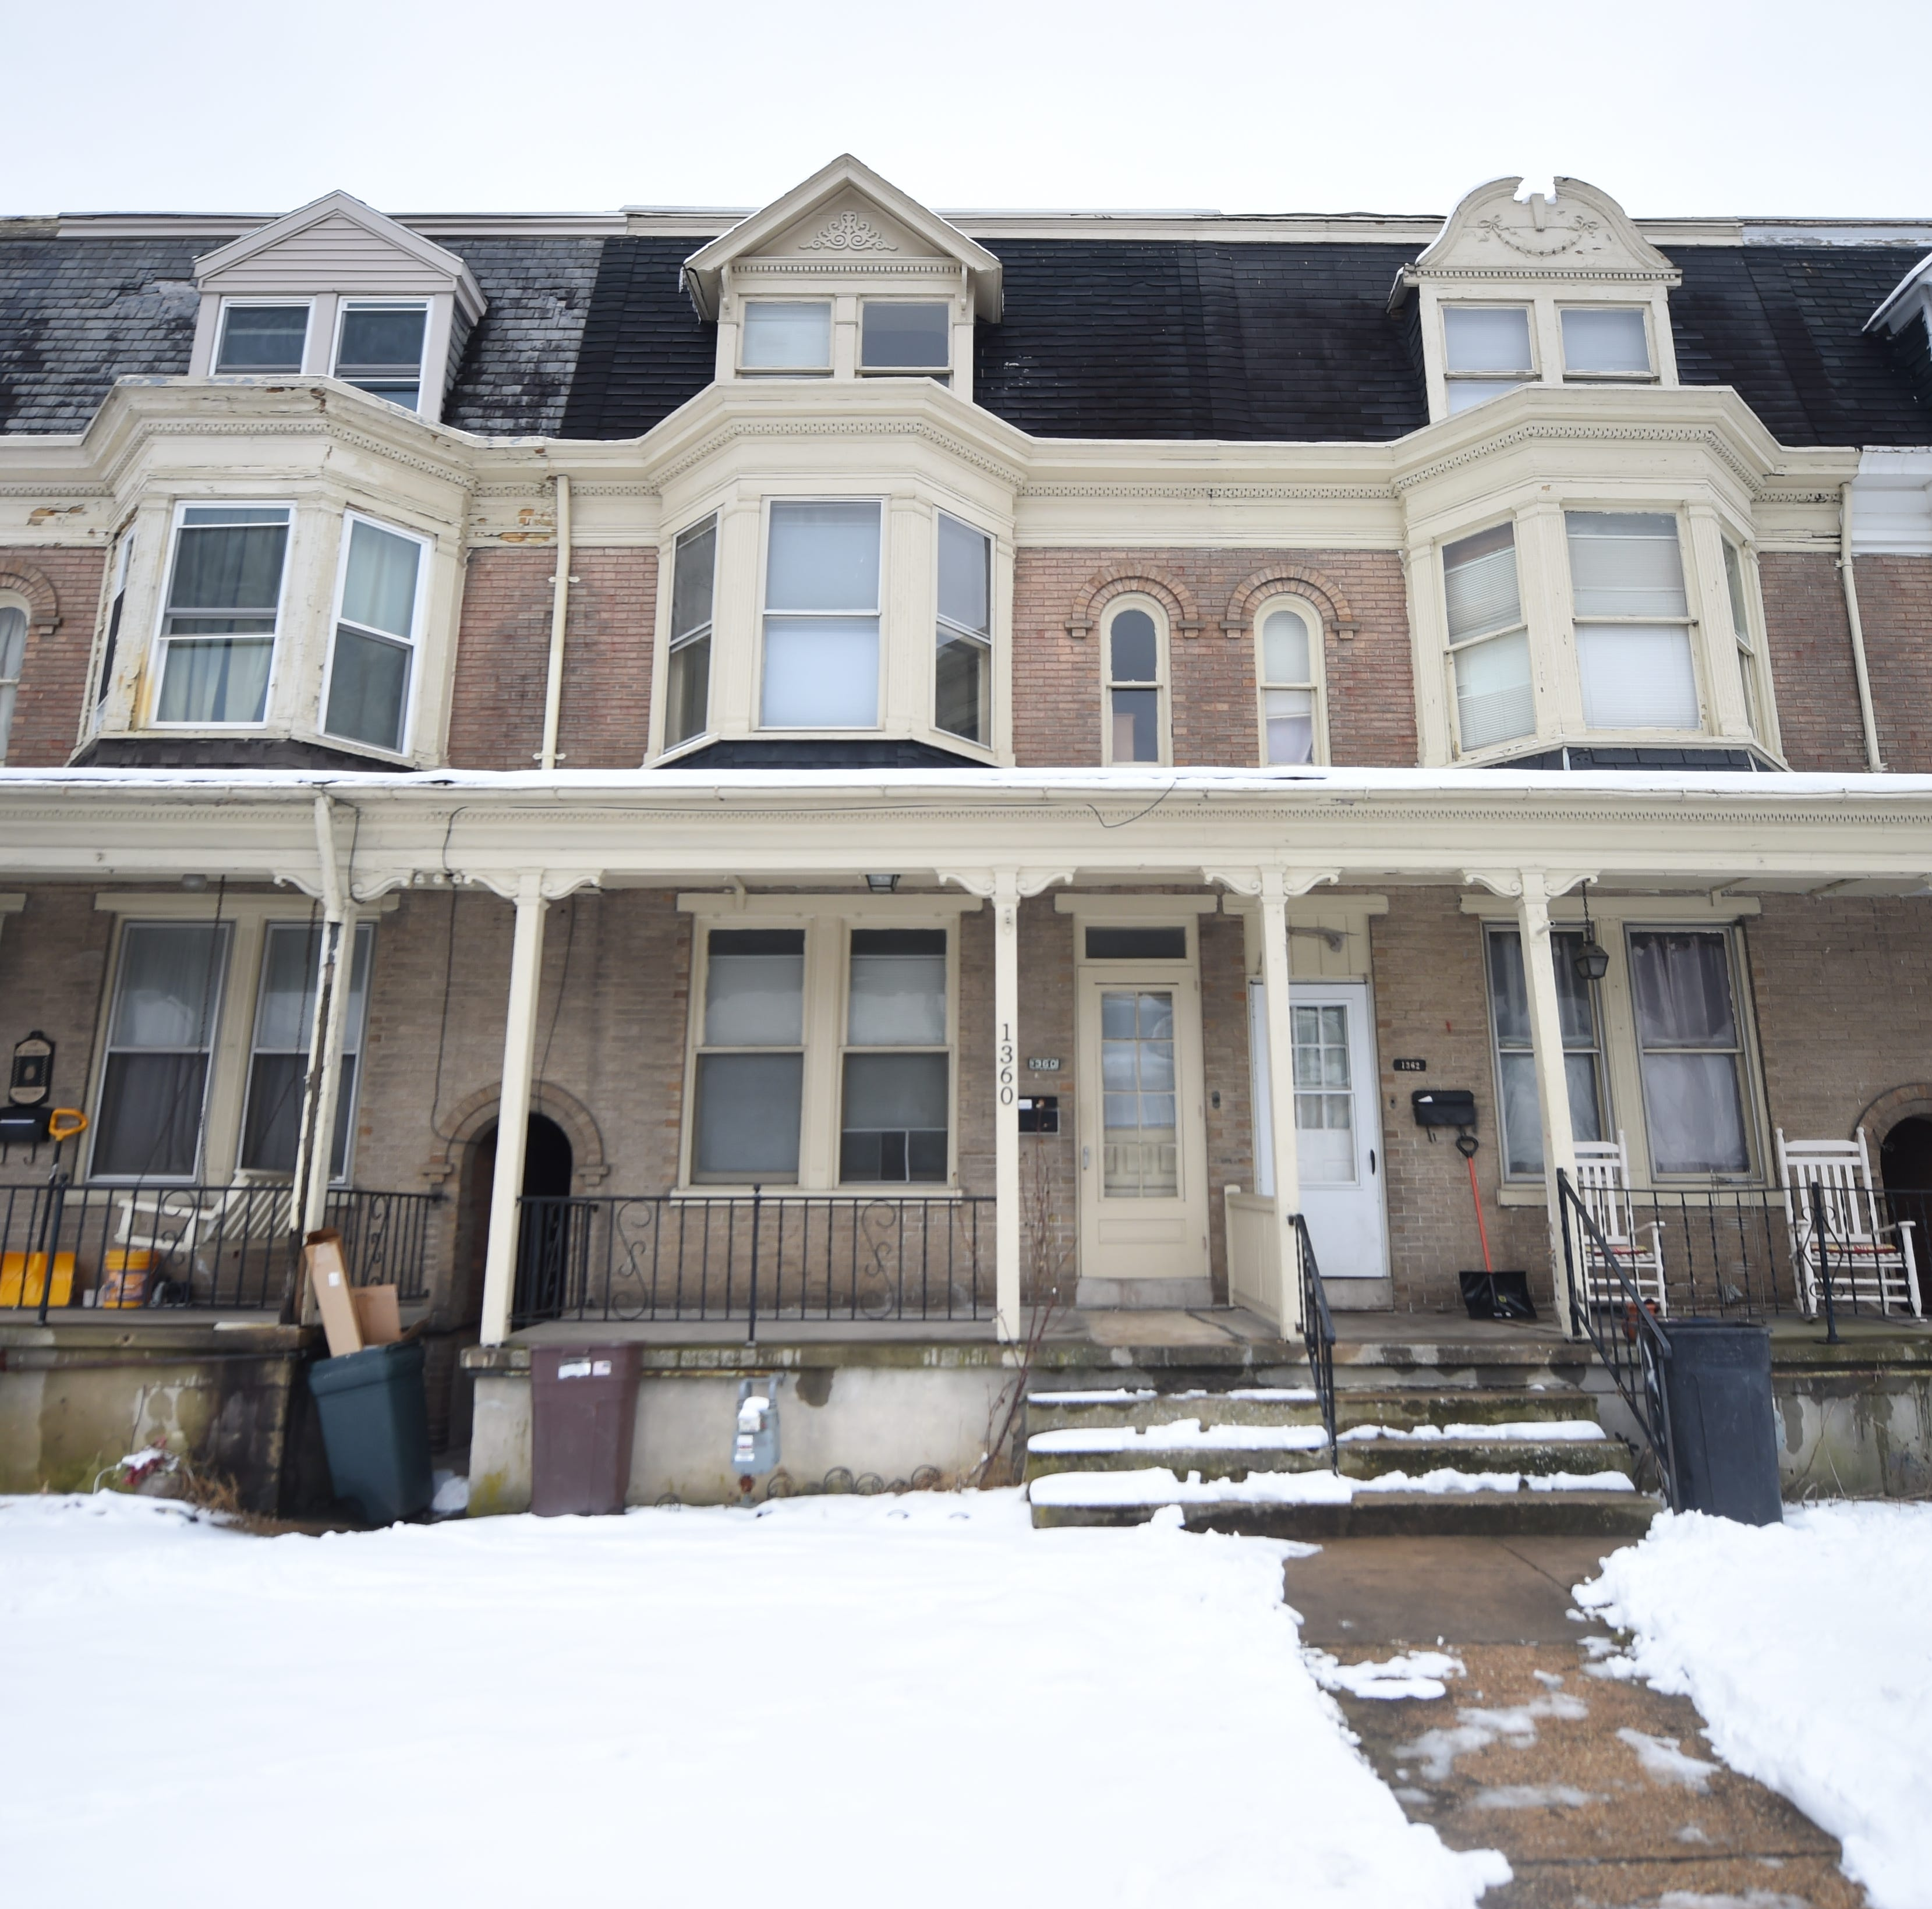 West York house of horrors: 7 key questions about the child abuse investigation